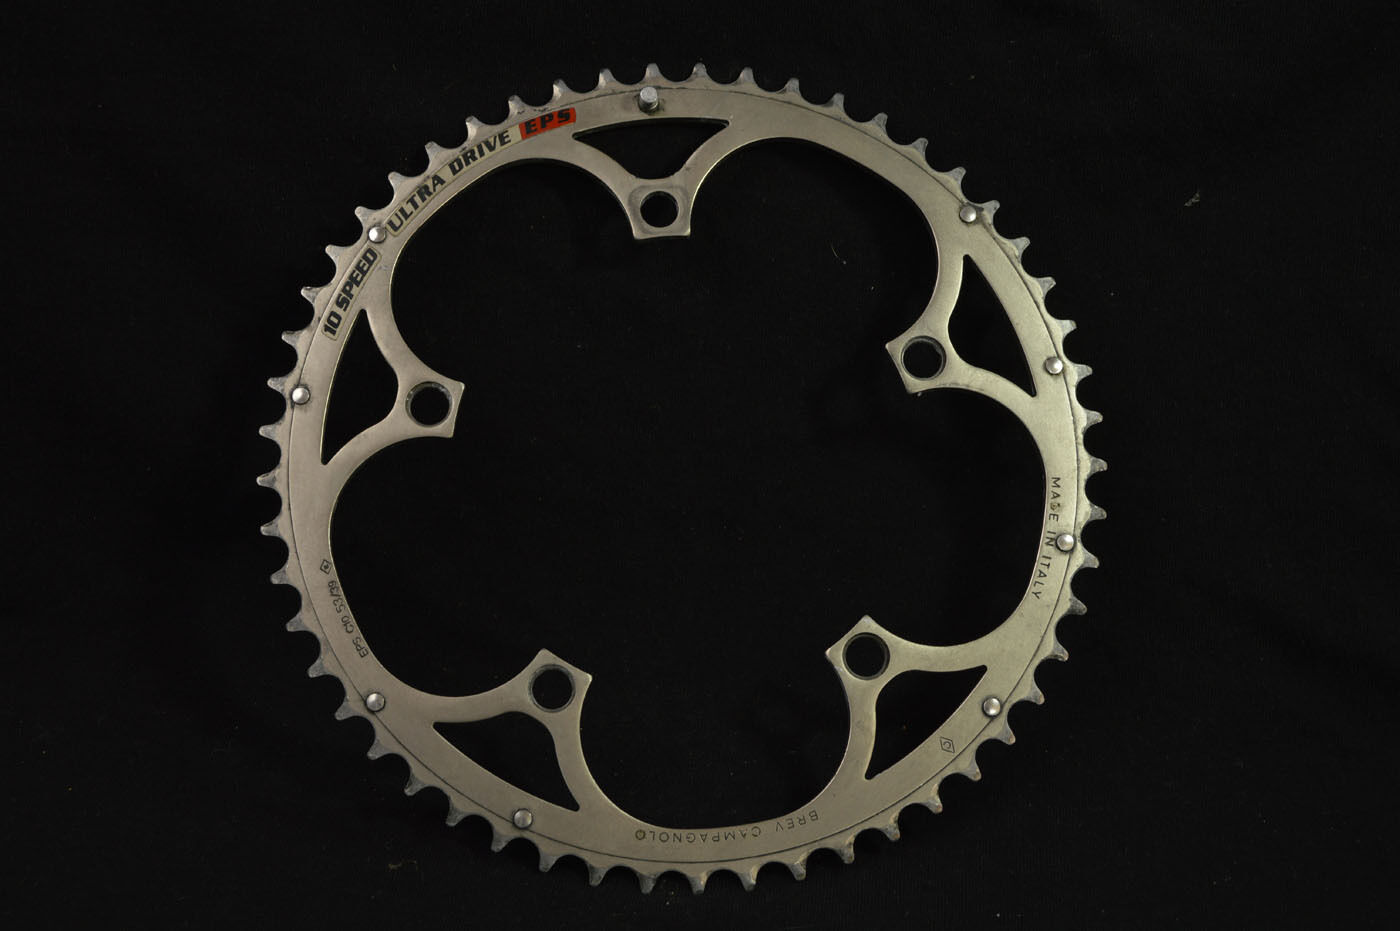 Chainring Campagnolo 10 speed ultra drive EPS alloy 53t  bcd-135